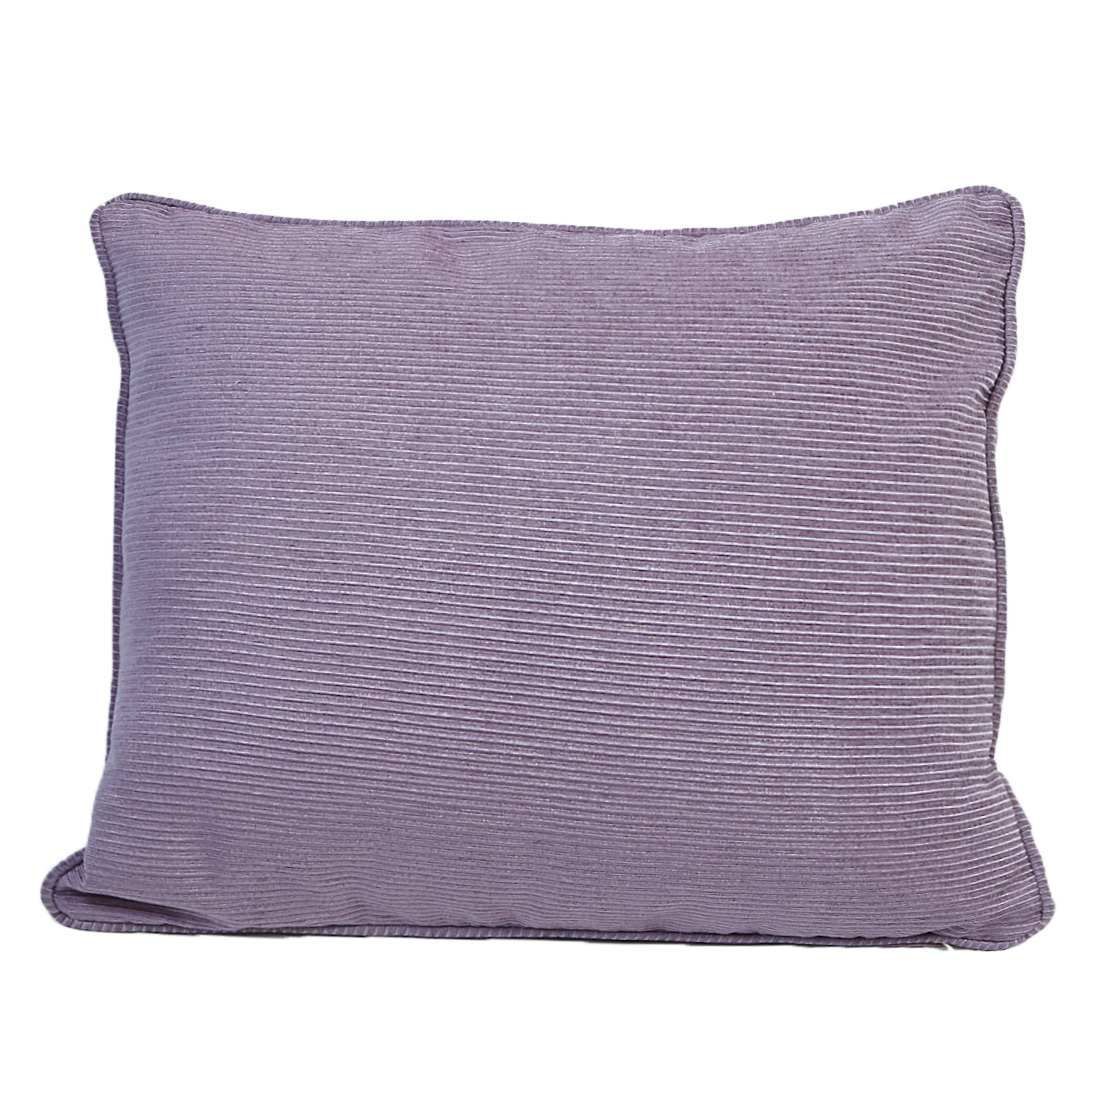 Imogen Heather Cushion